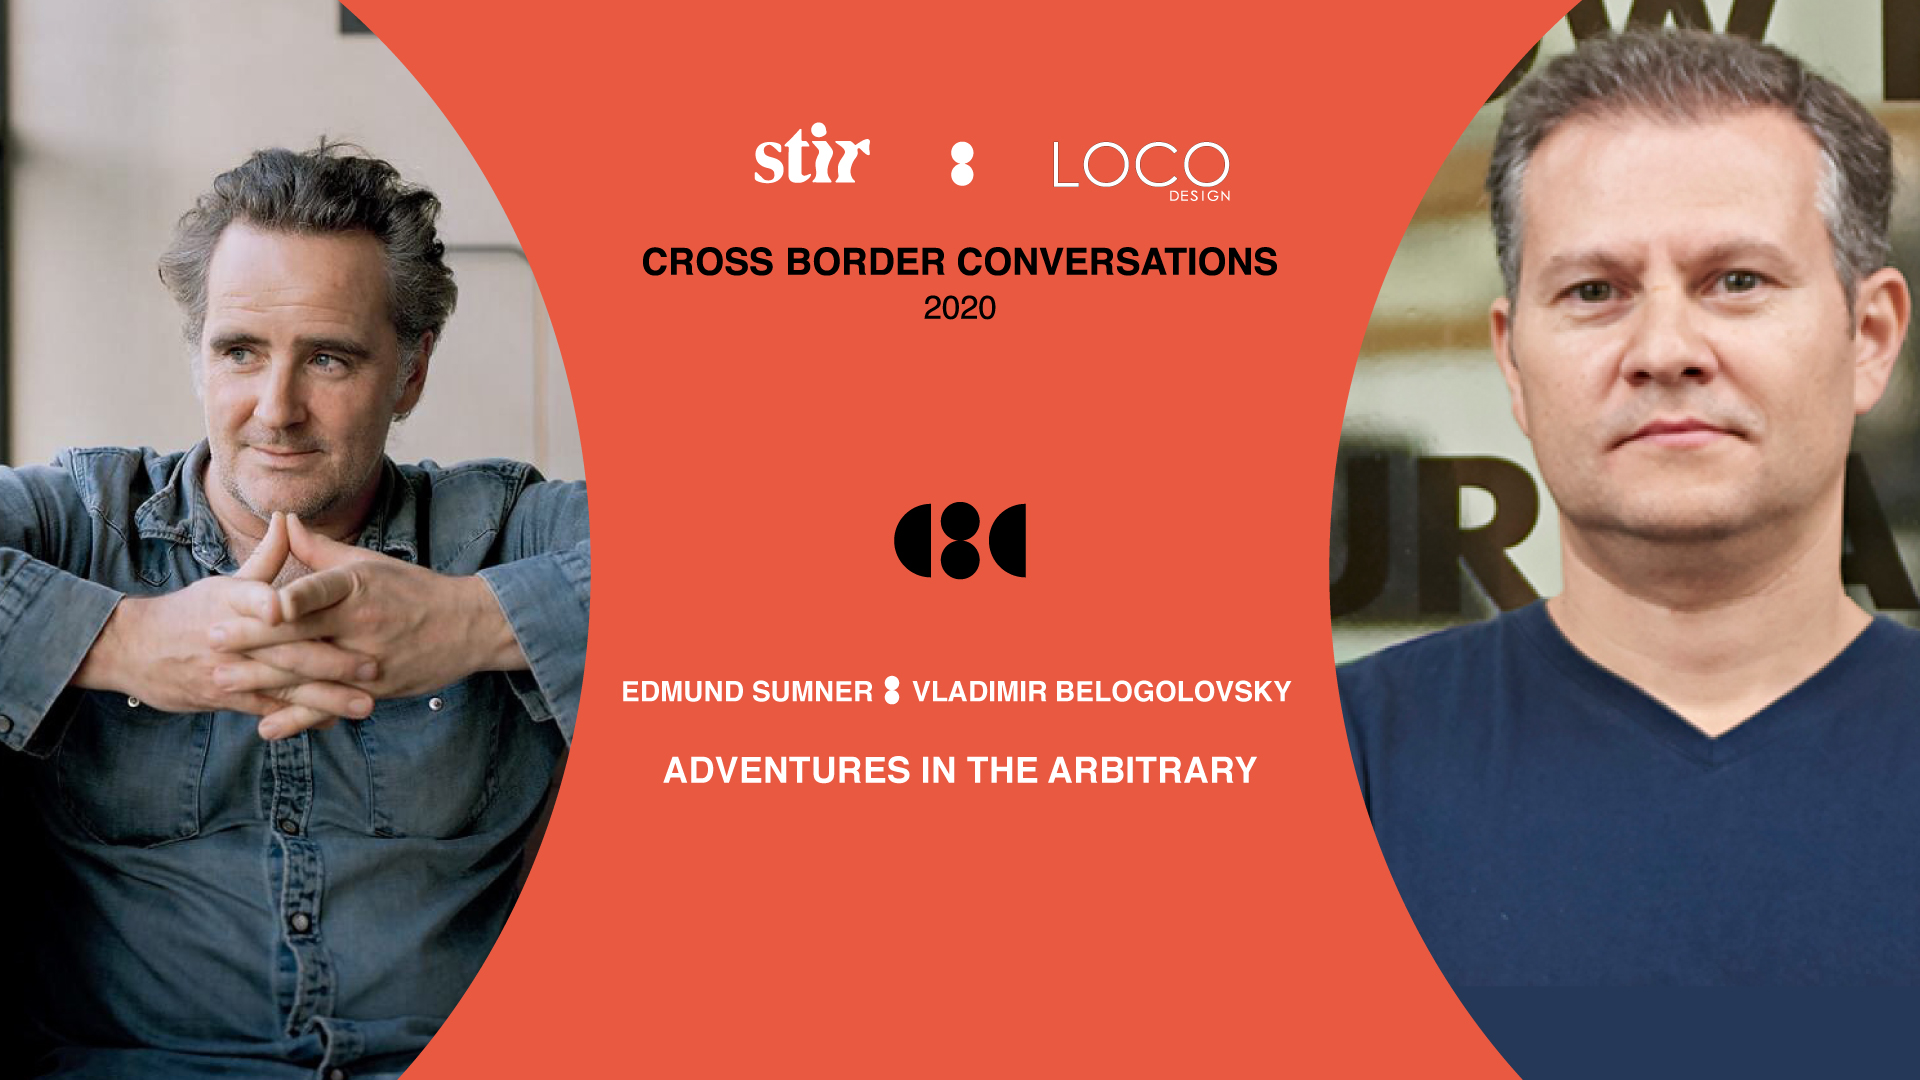 Cross Border Conversations | Edmund Sumner X Vladimir Belogolovsky | STIR X LOCO Design